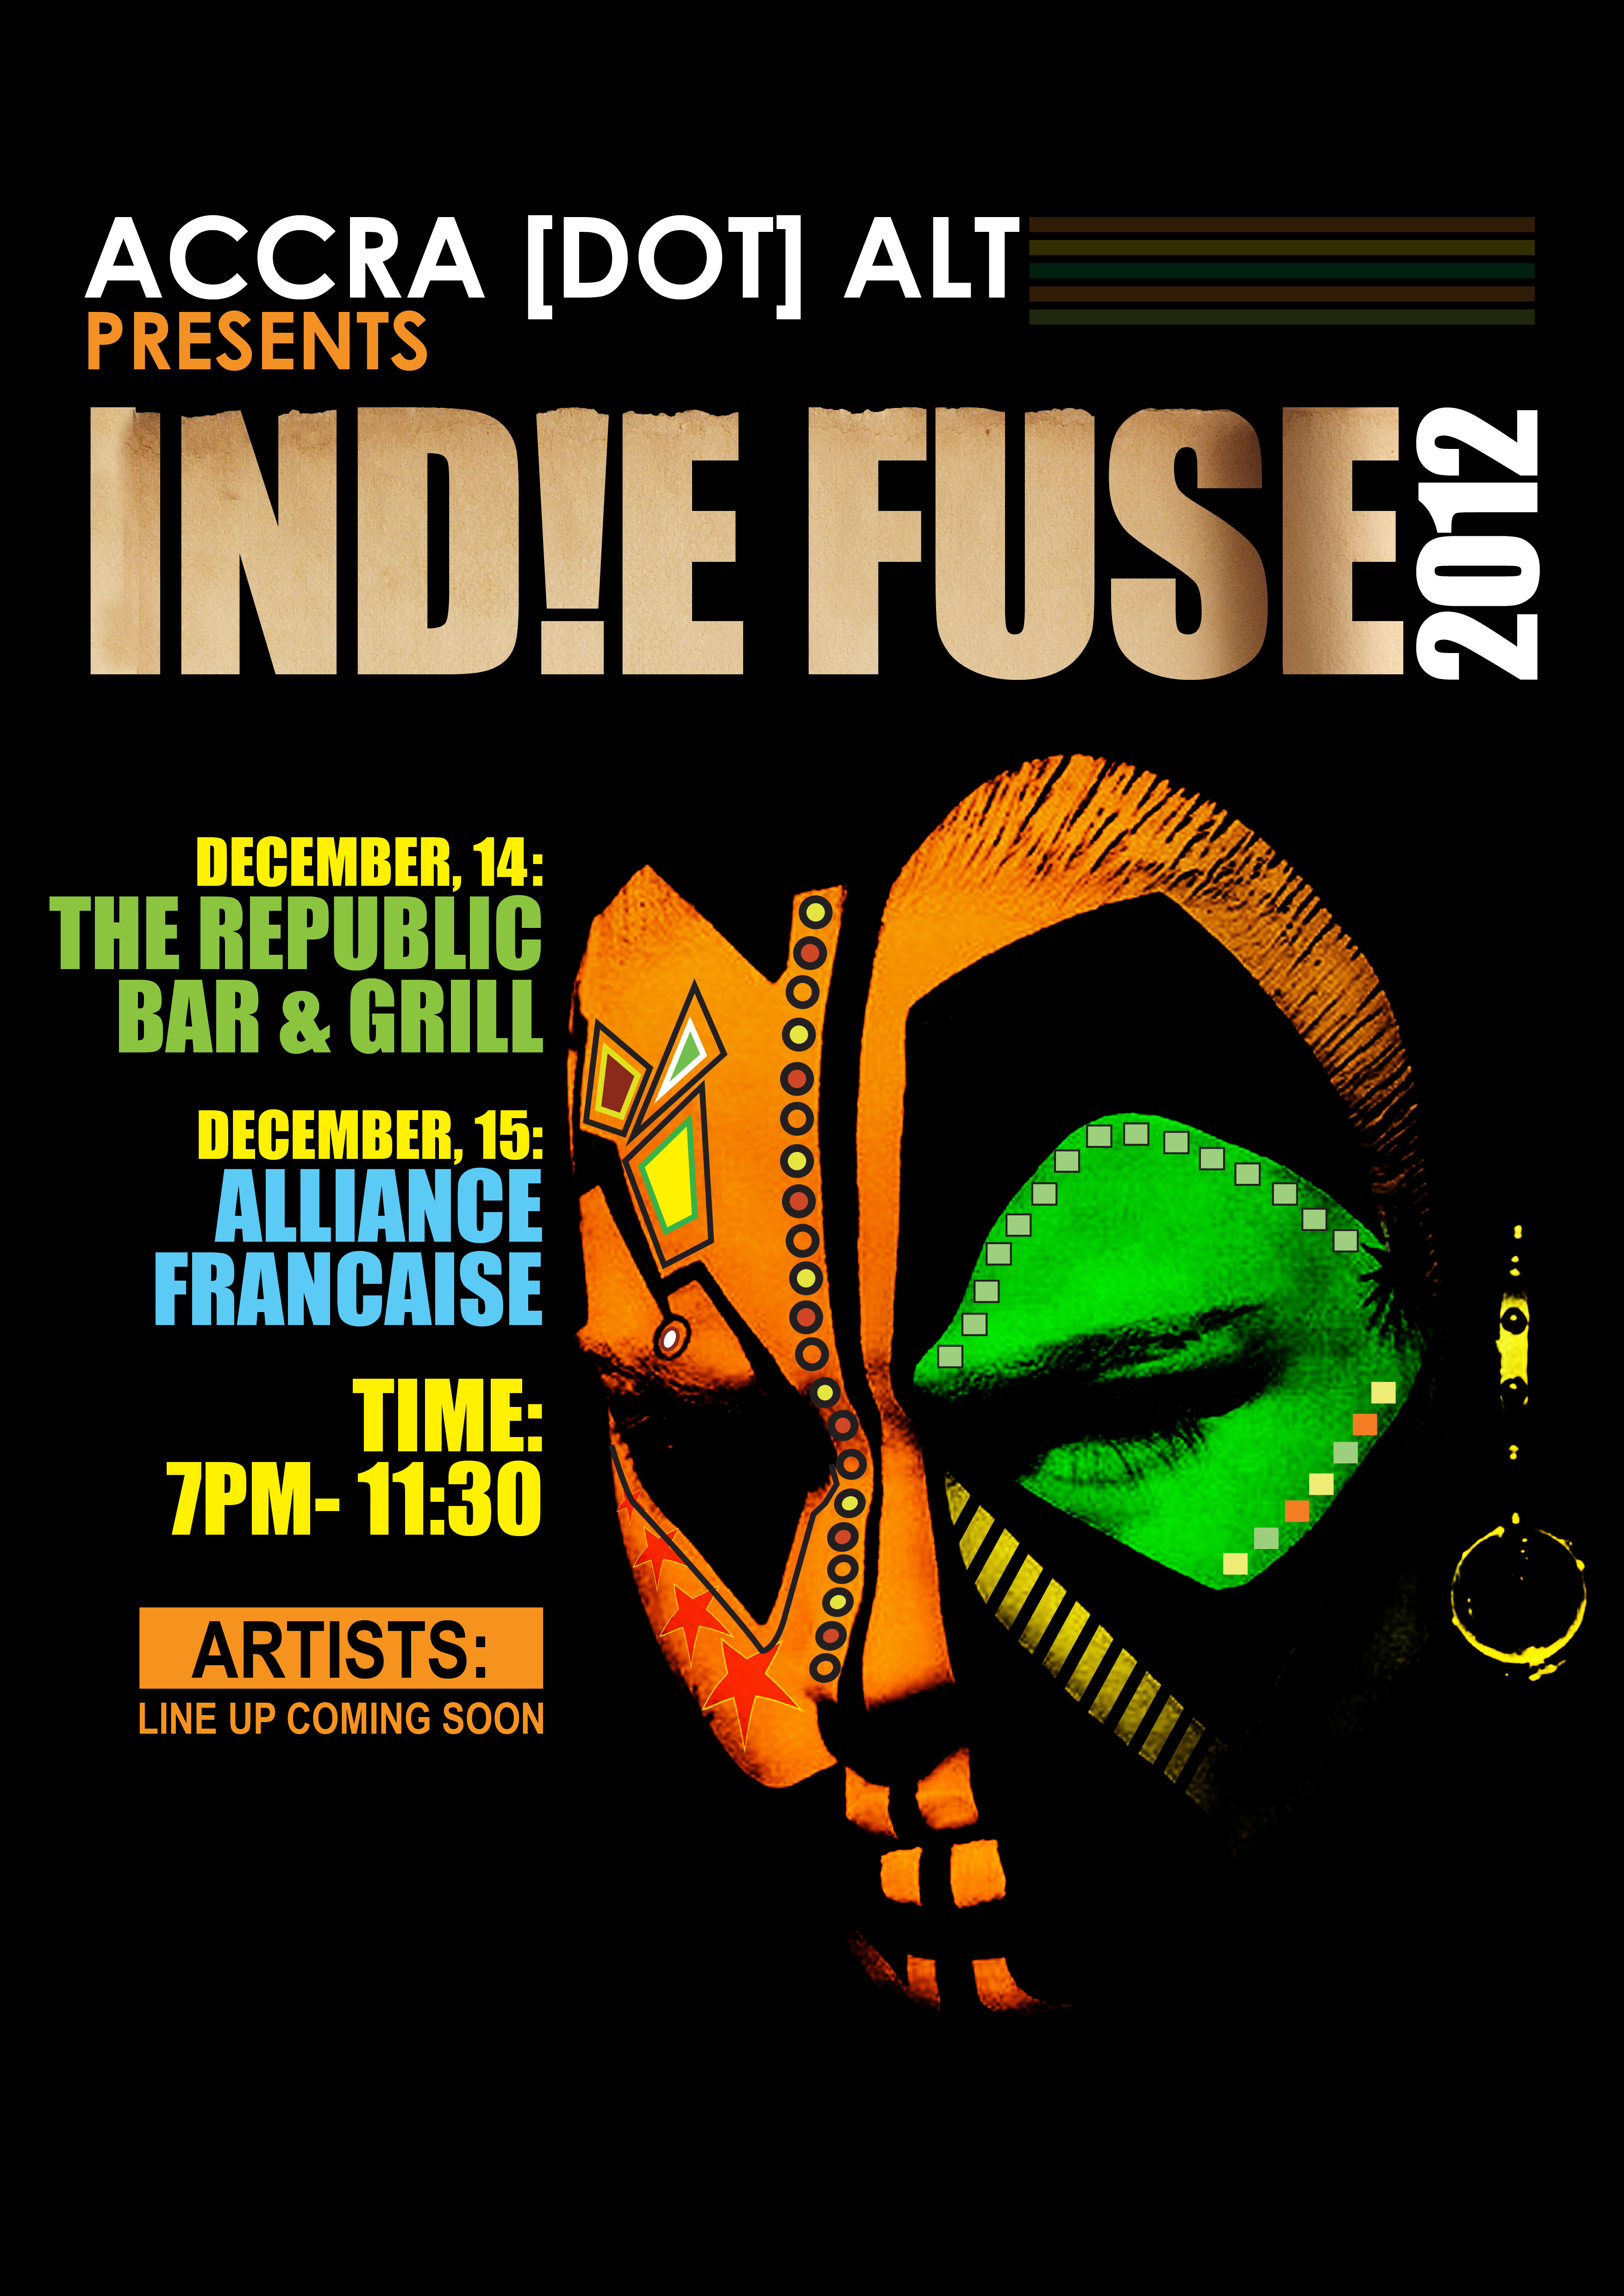 IND!E FUSE 2012: LIVE ELECTRO MUSIC SHAKE UP IN ACCRA, DECEMBER 14TH &15TH